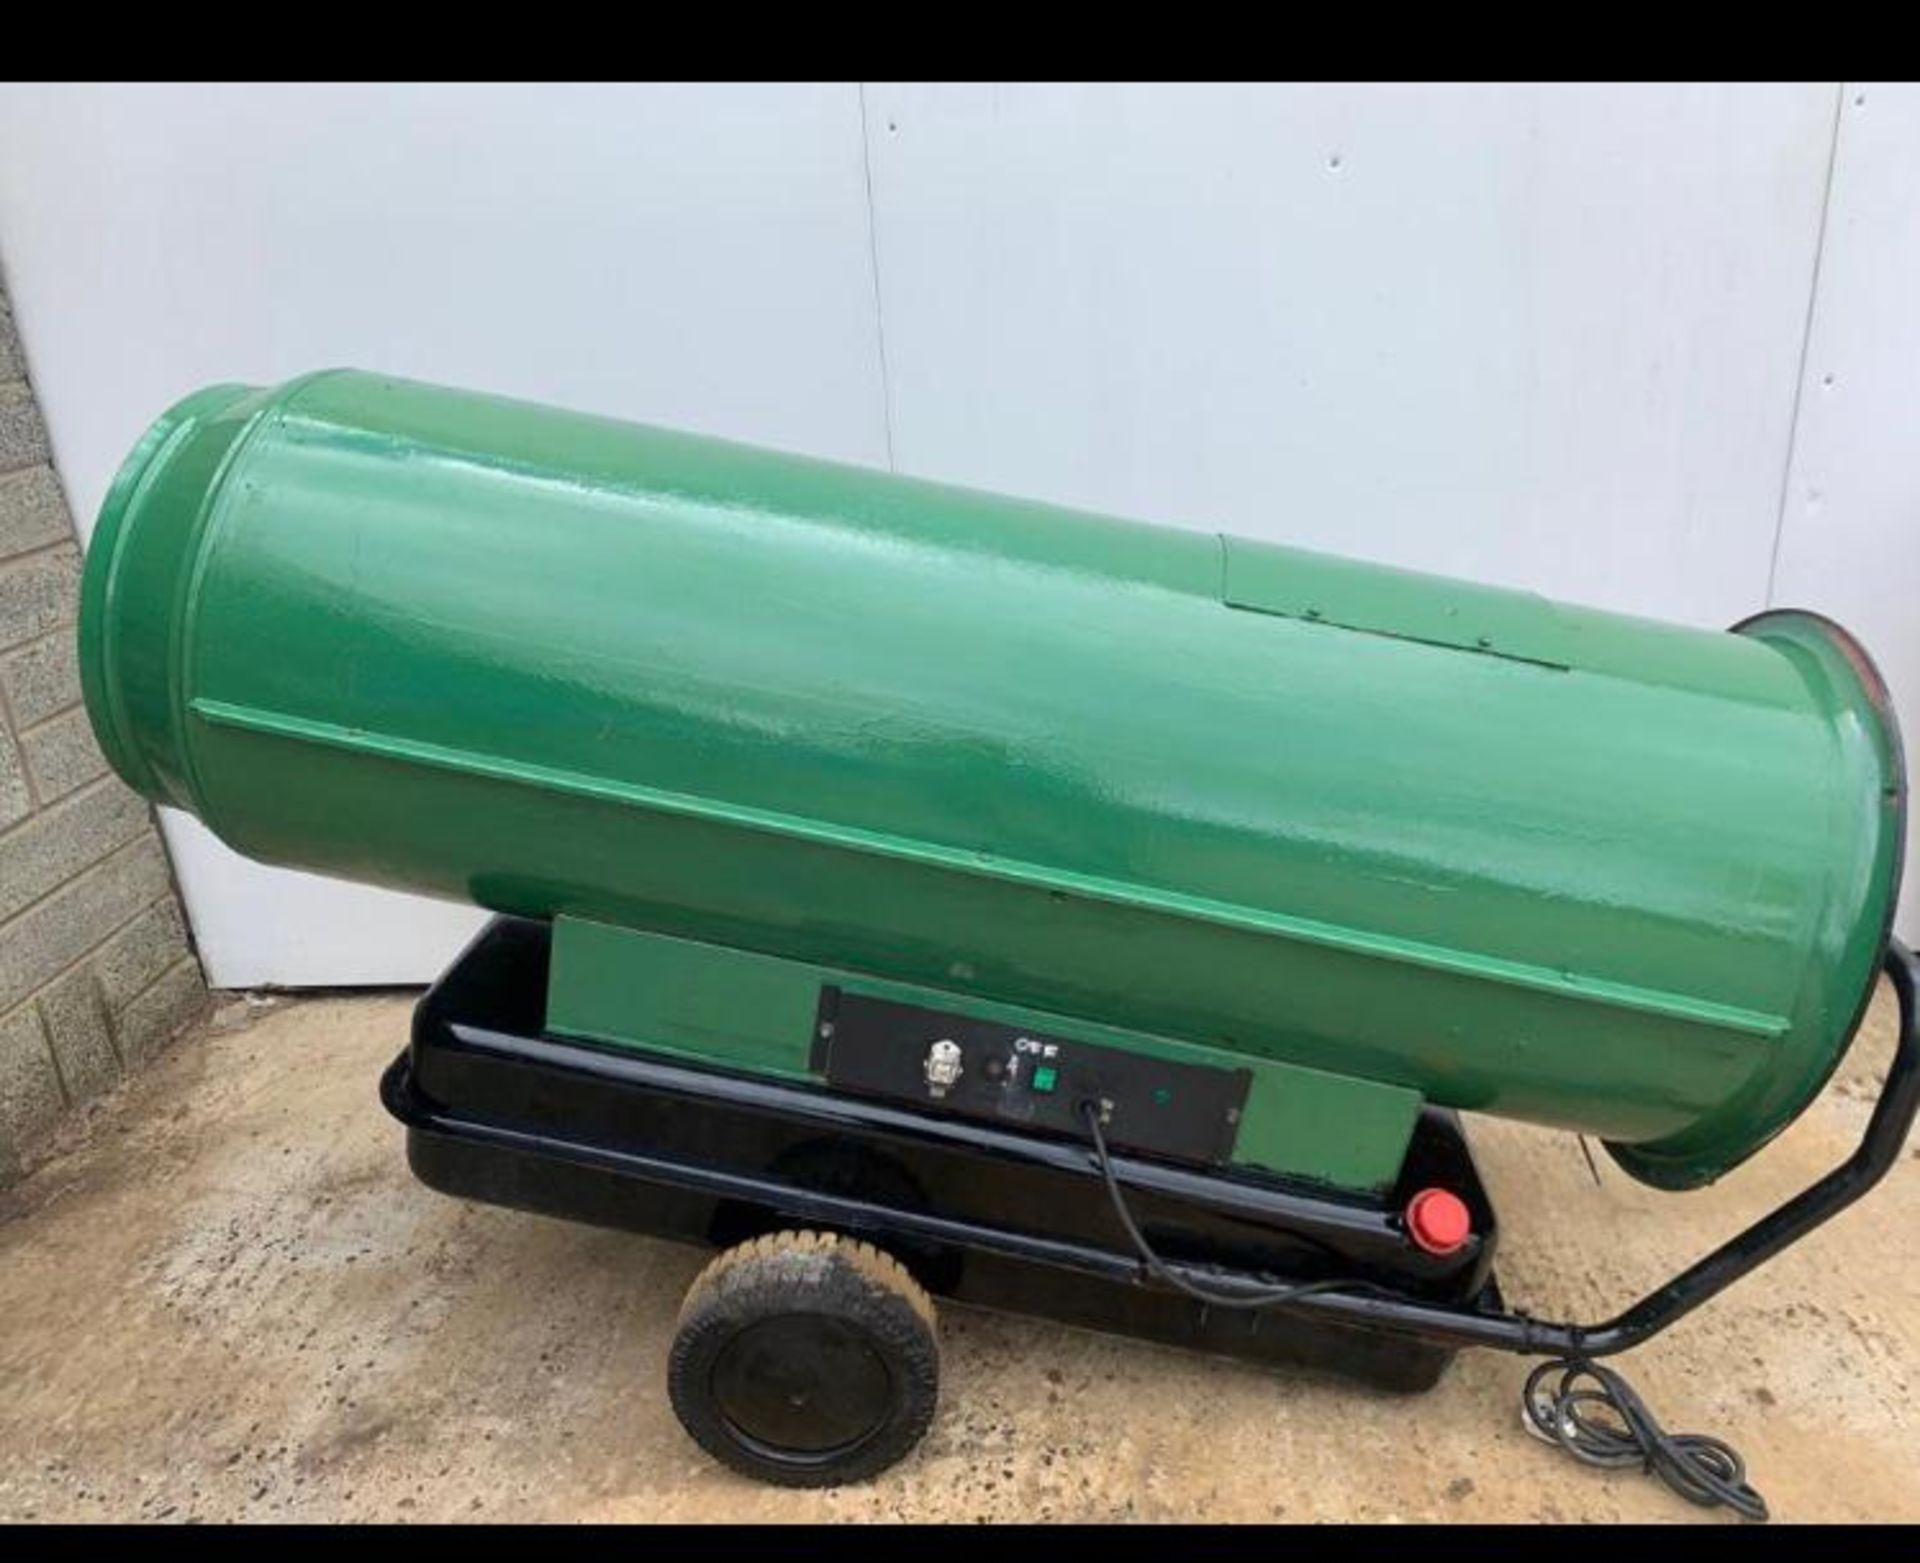 Diesel space heater delivery £120 anywhere uk *PLUS VAT* - Image 4 of 4